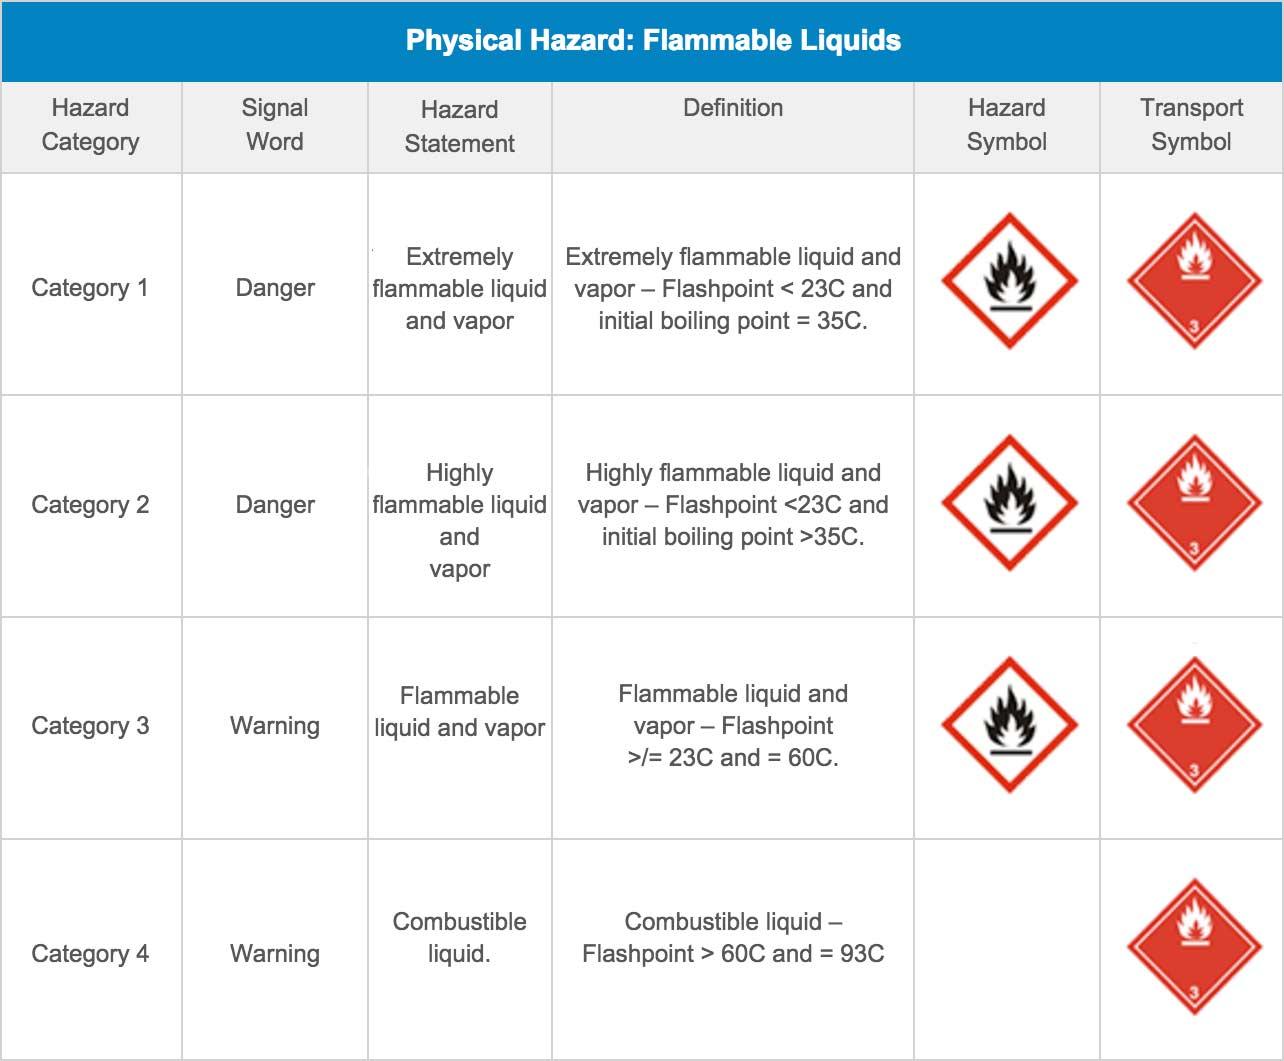 Physical Hazard: Flammable Liquids